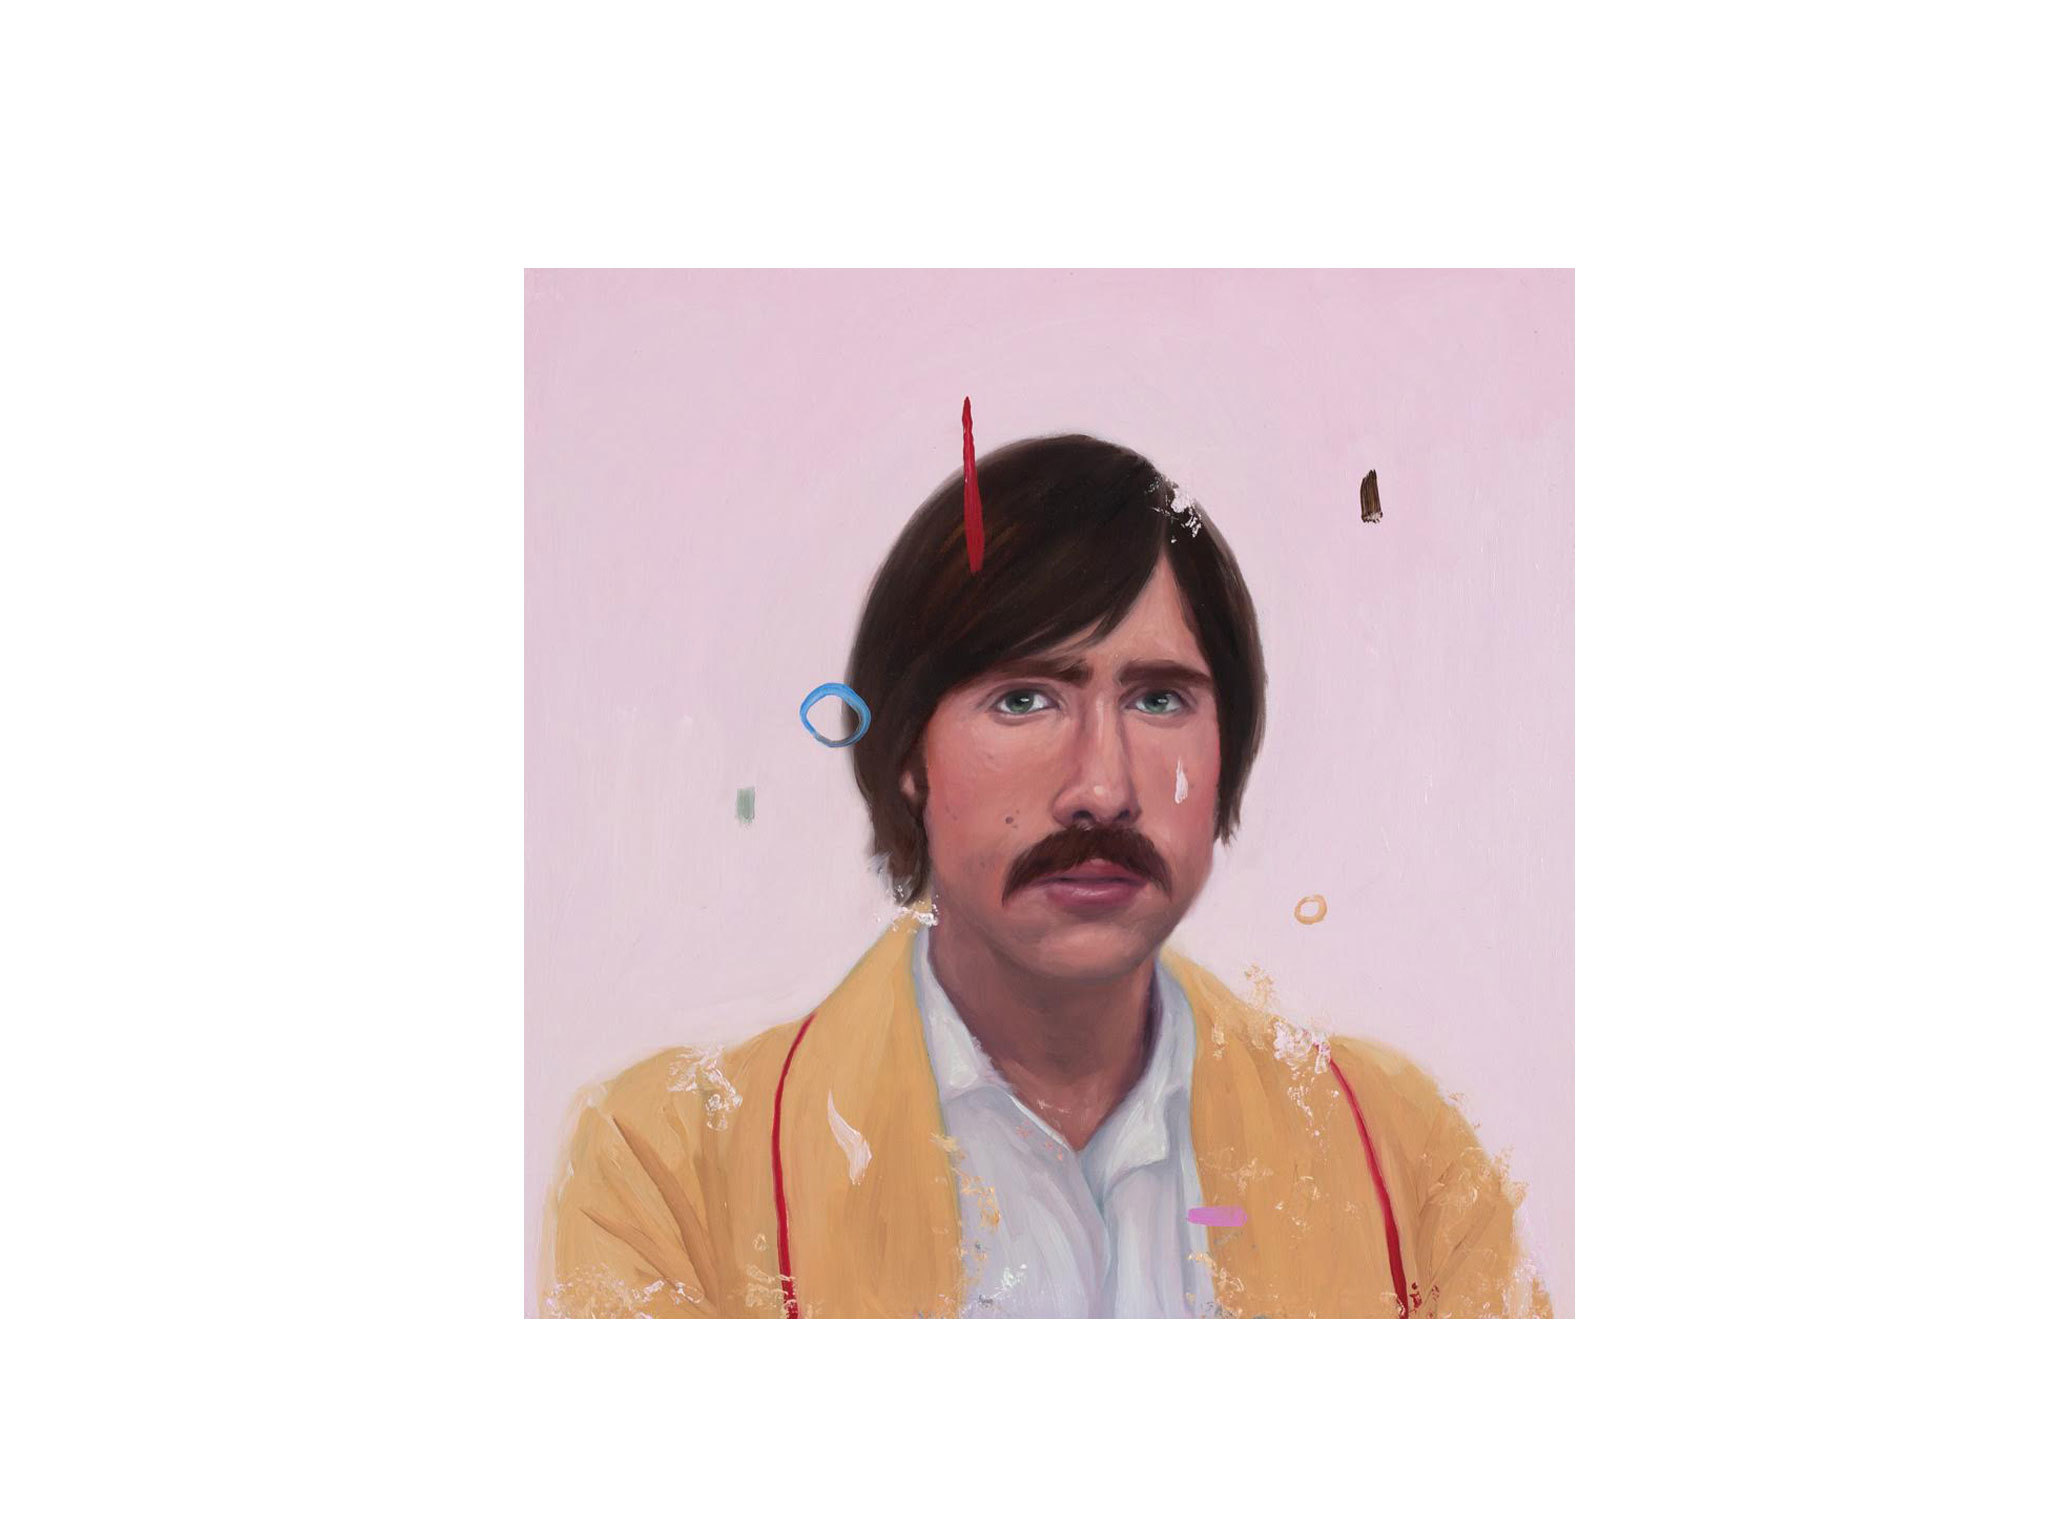 Valentin Fischer paints for Bad Dads VI - an artshow tribute to the films of Wes Anderson